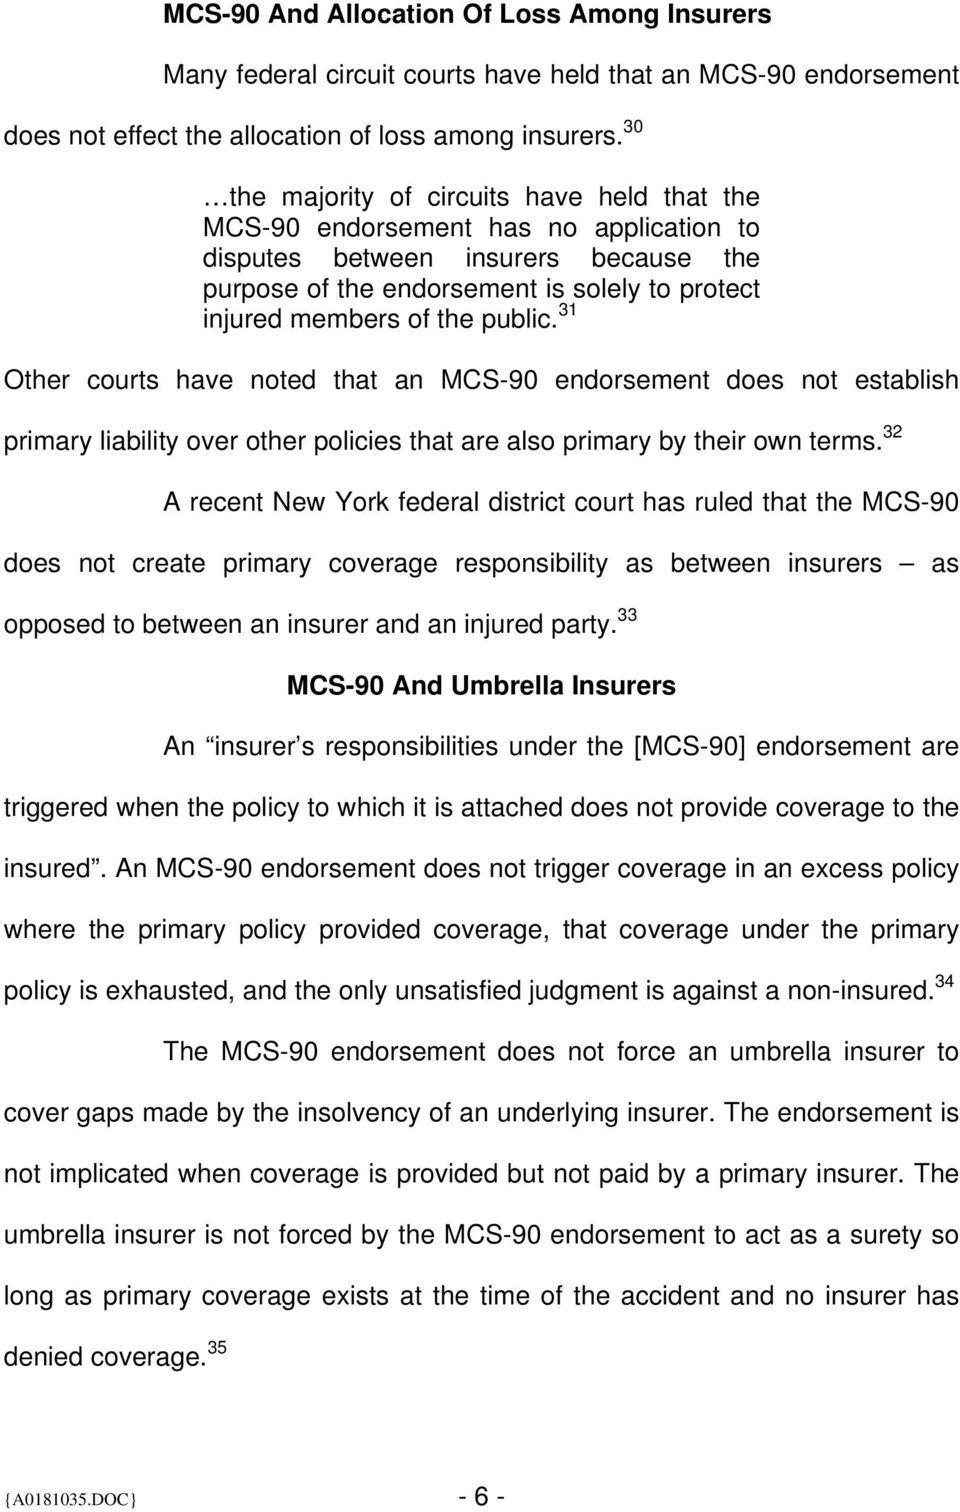 public. 31 Other courts have noted that an MCS-90 endorsement does not establish primary liability over other policies that are also primary by their own terms.